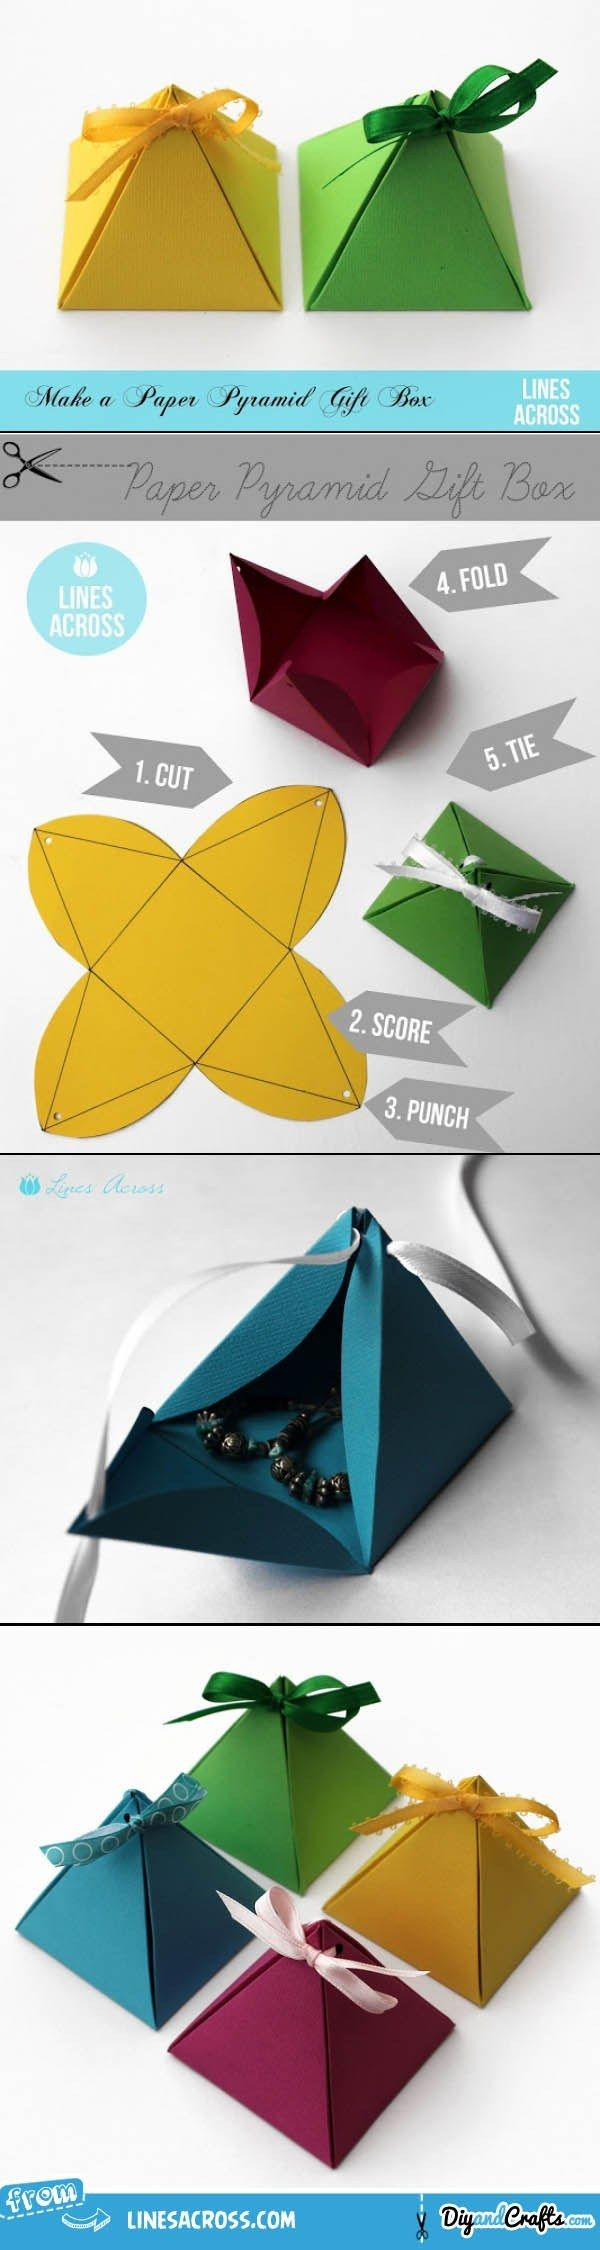 How to Make Paper Pyramid Gift Box | From Handimania